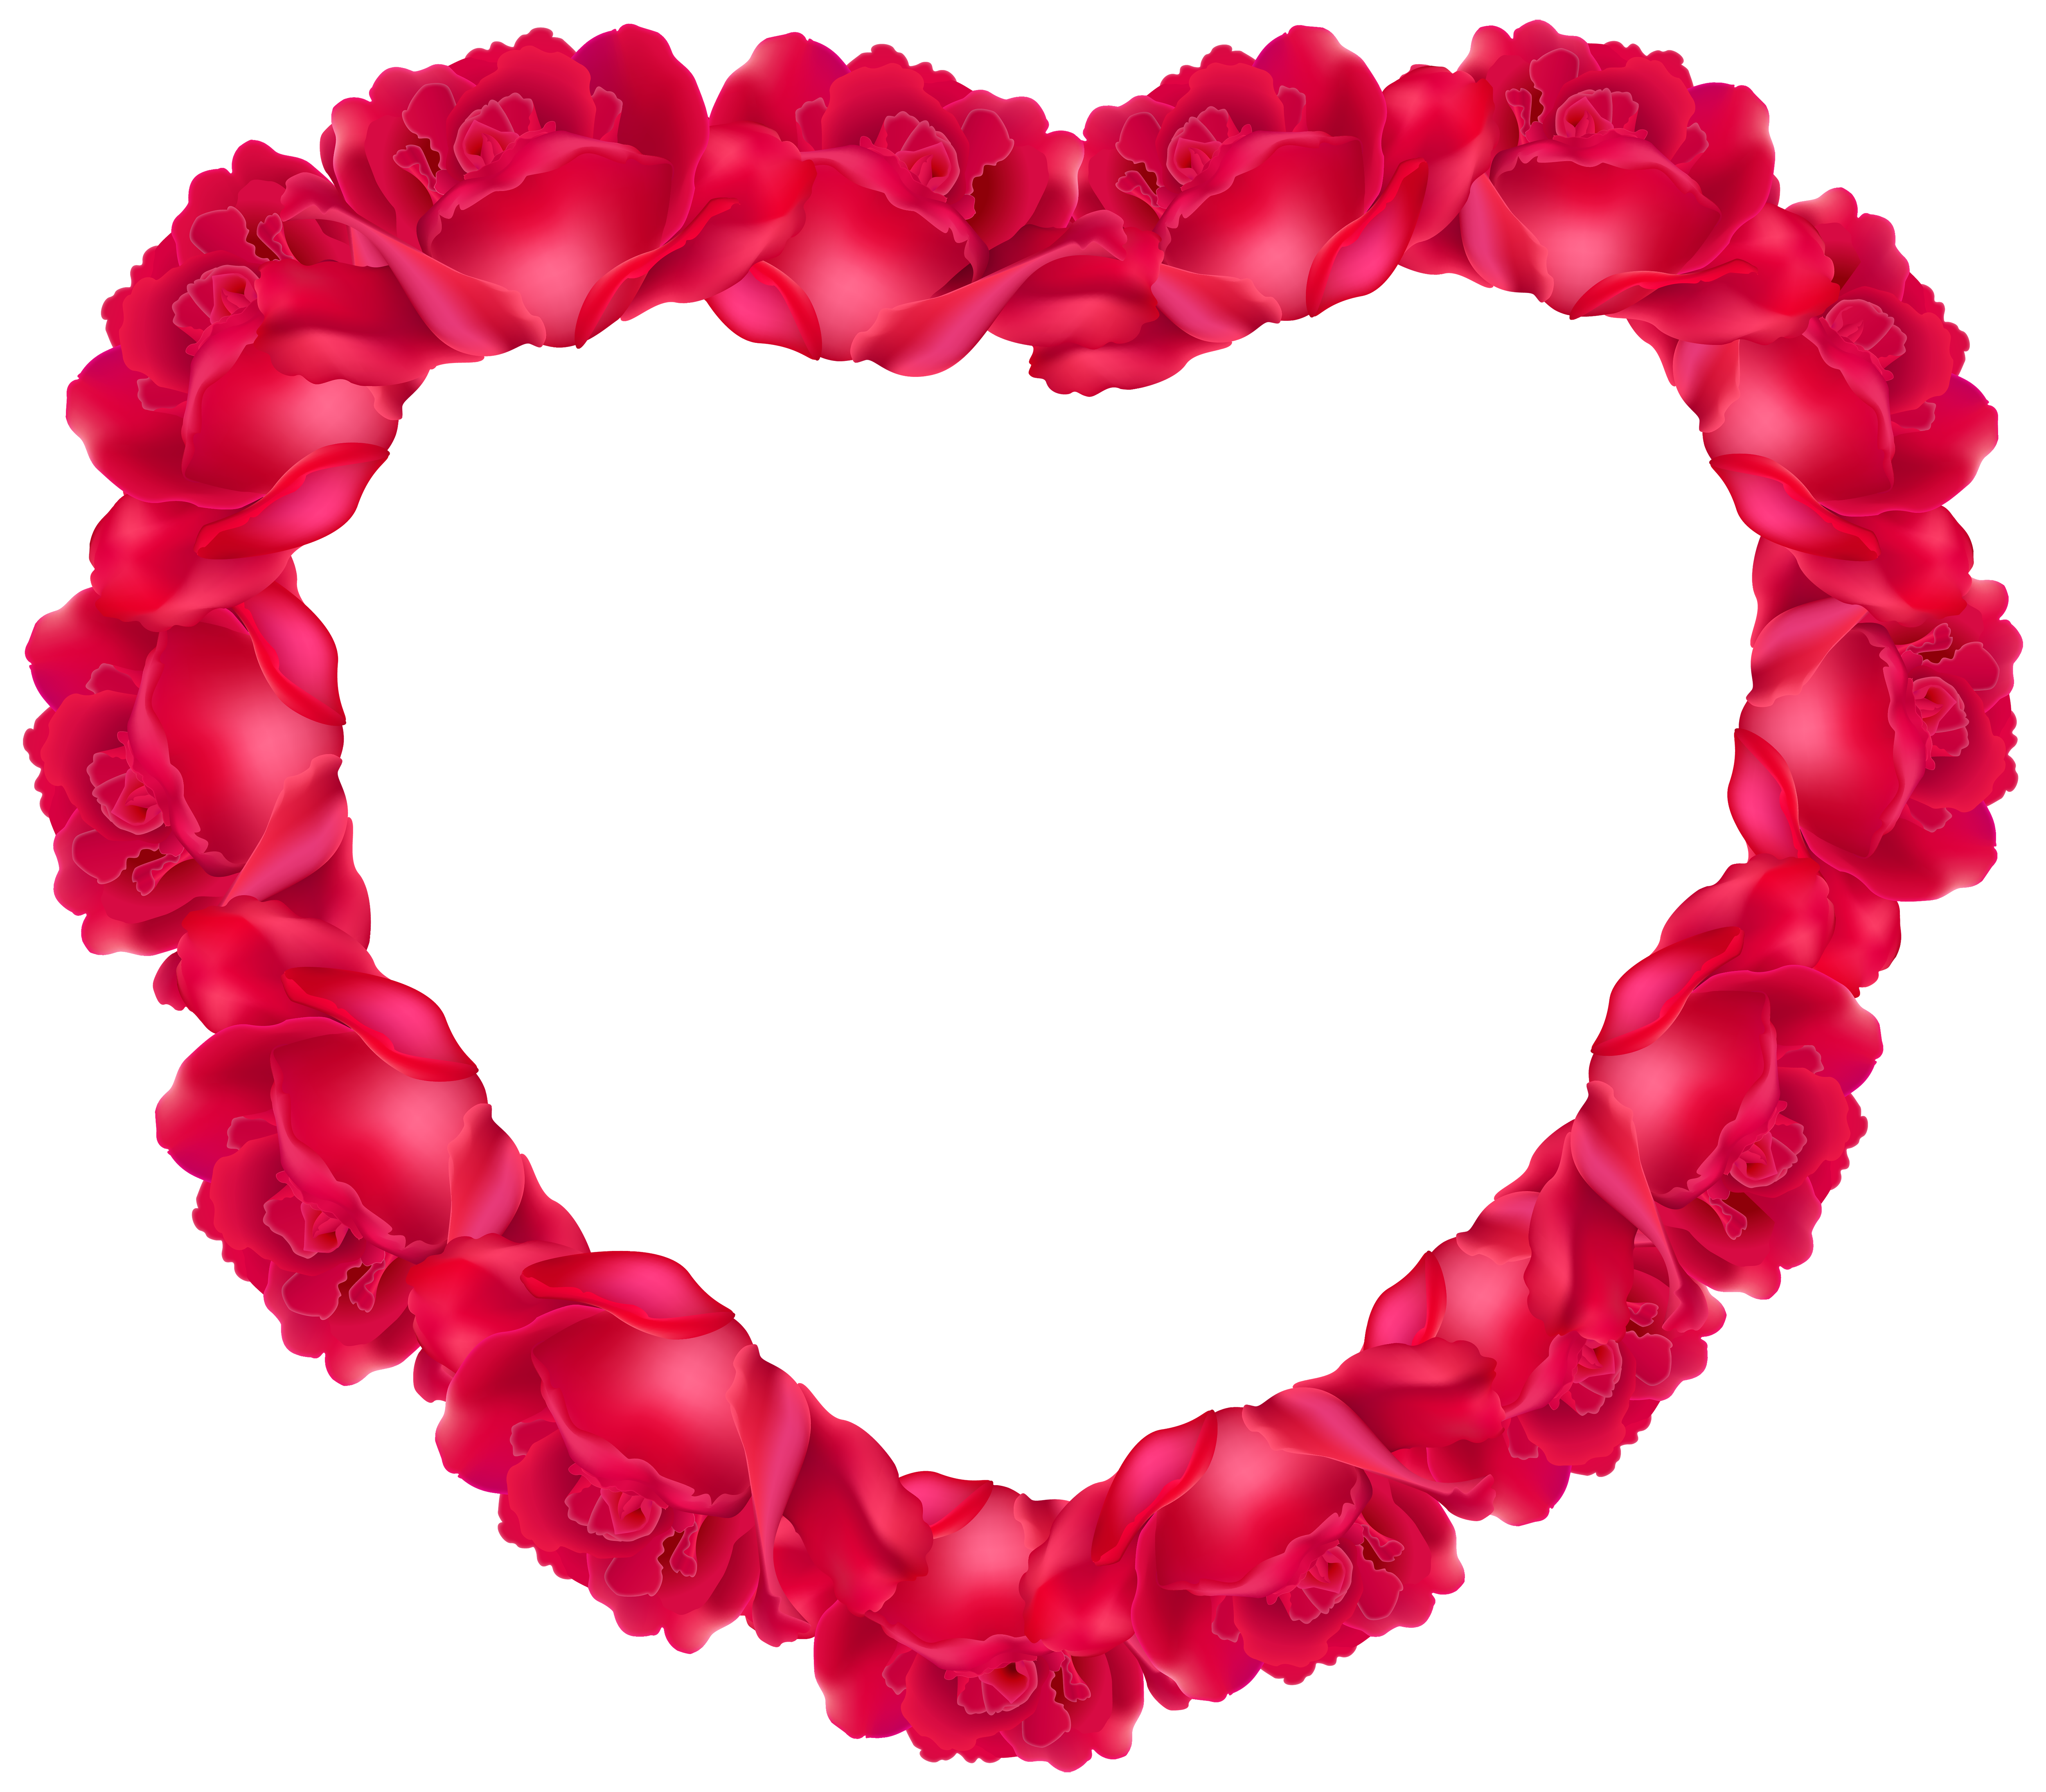 Heart of Roses PNG Clipart Image.